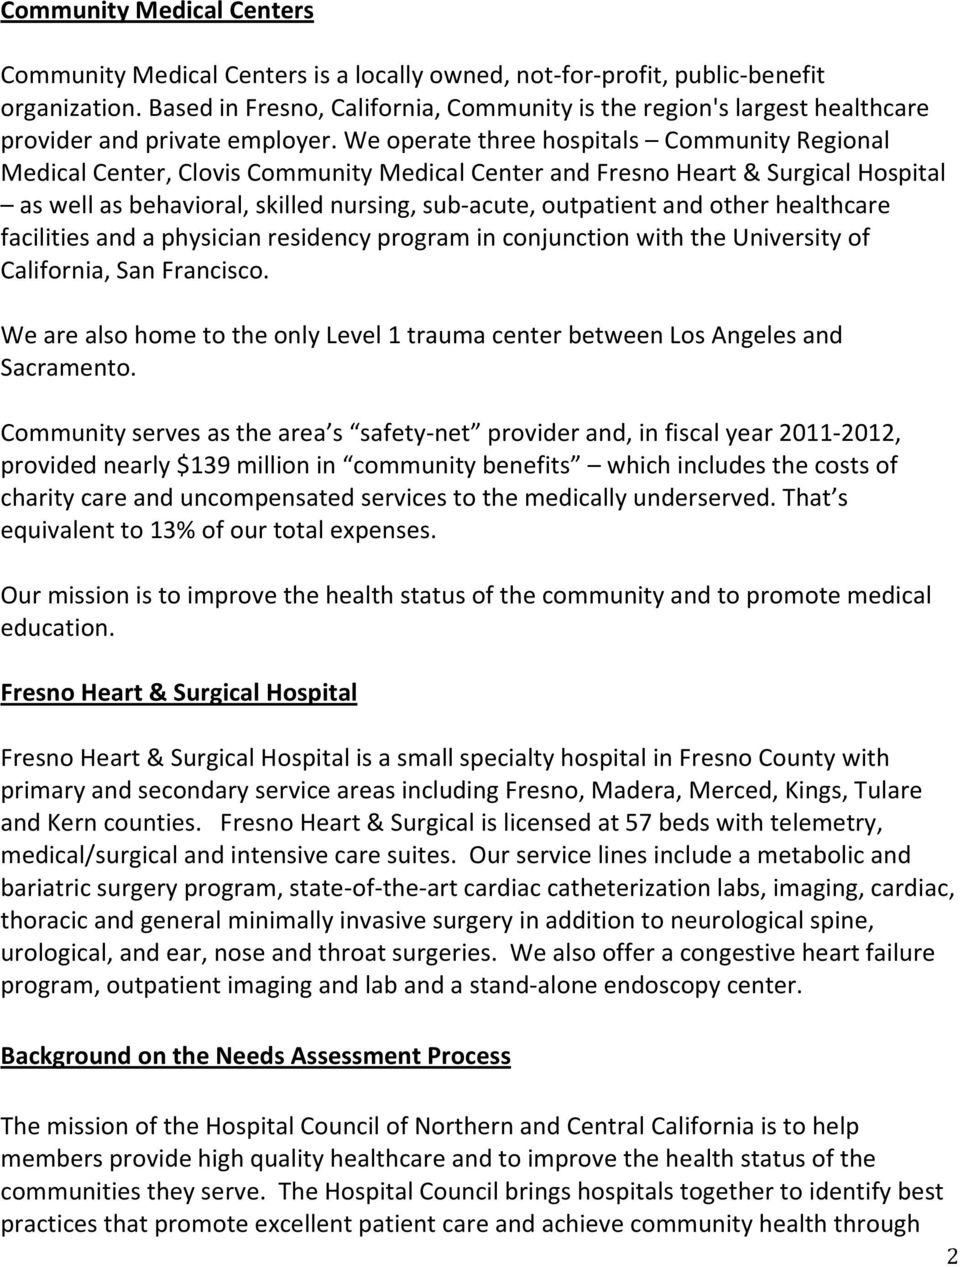 We operate three hospitals Community Regional Medical Center, Clovis Community Medical Center and Fresno Heart & Surgical Hospital as well as behavioral, skilled nursing, sub-acute, outpatient and